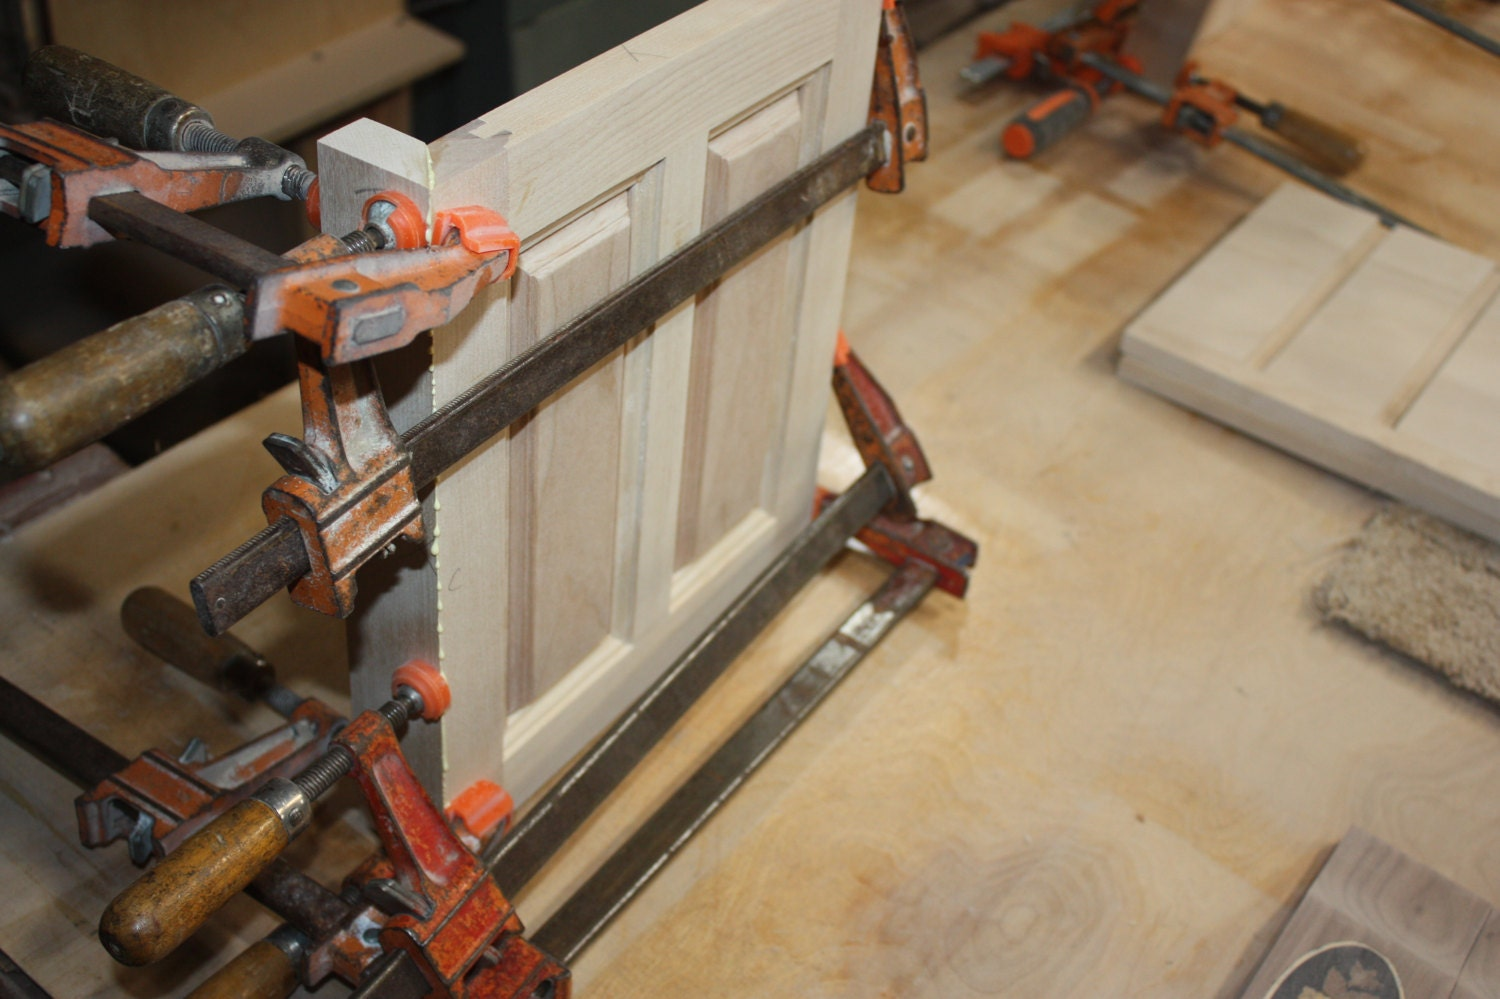 Gluing and Clamping Returns onto Jewelry Box Sides